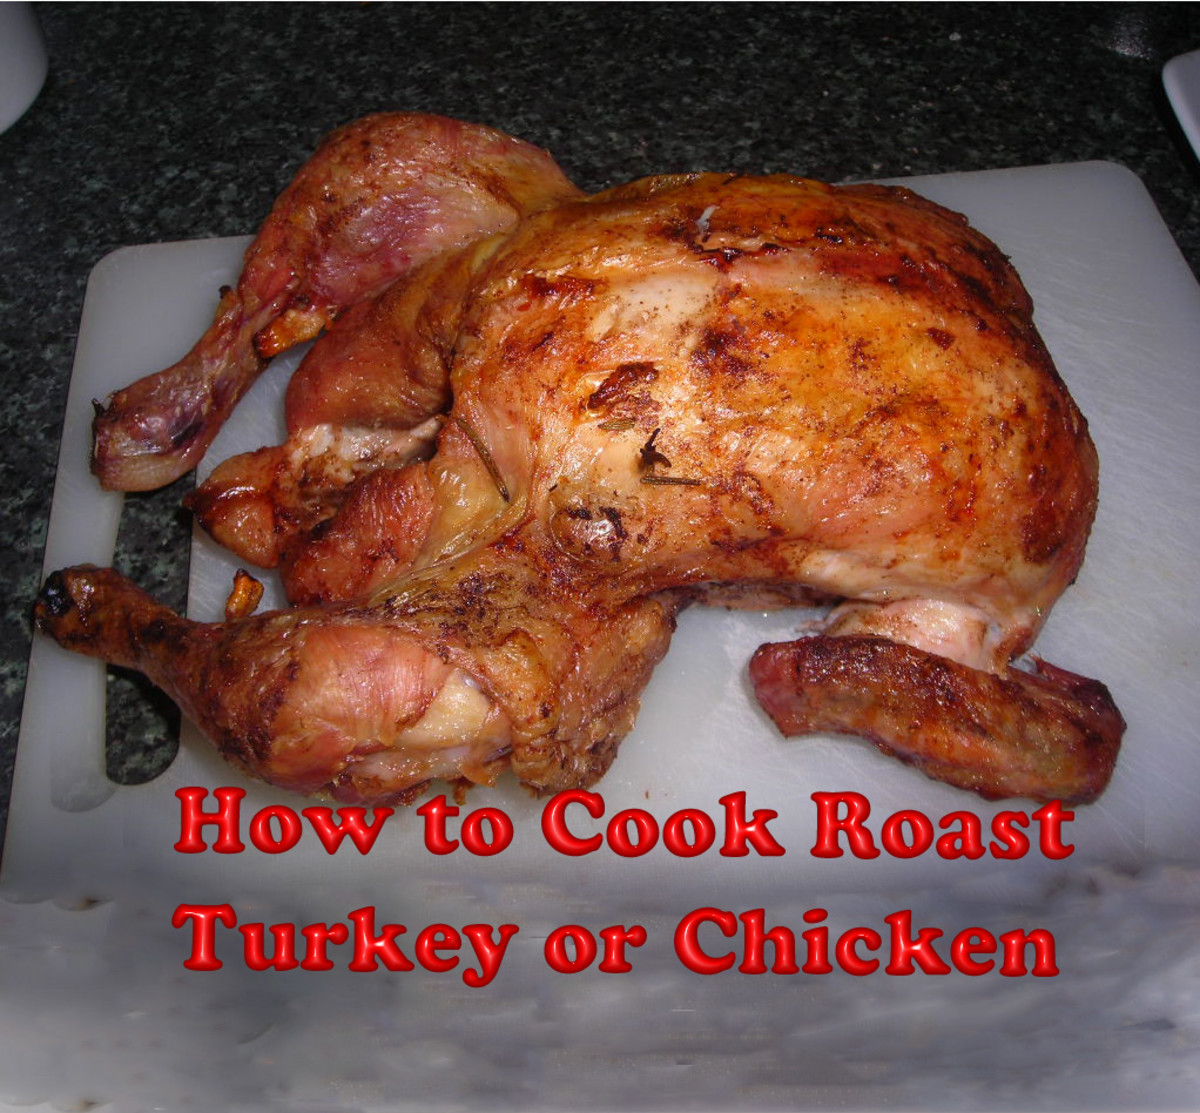 How to Cook Roast Turkey or Chicken - Keep This Recipe for Your Christmas Dinner